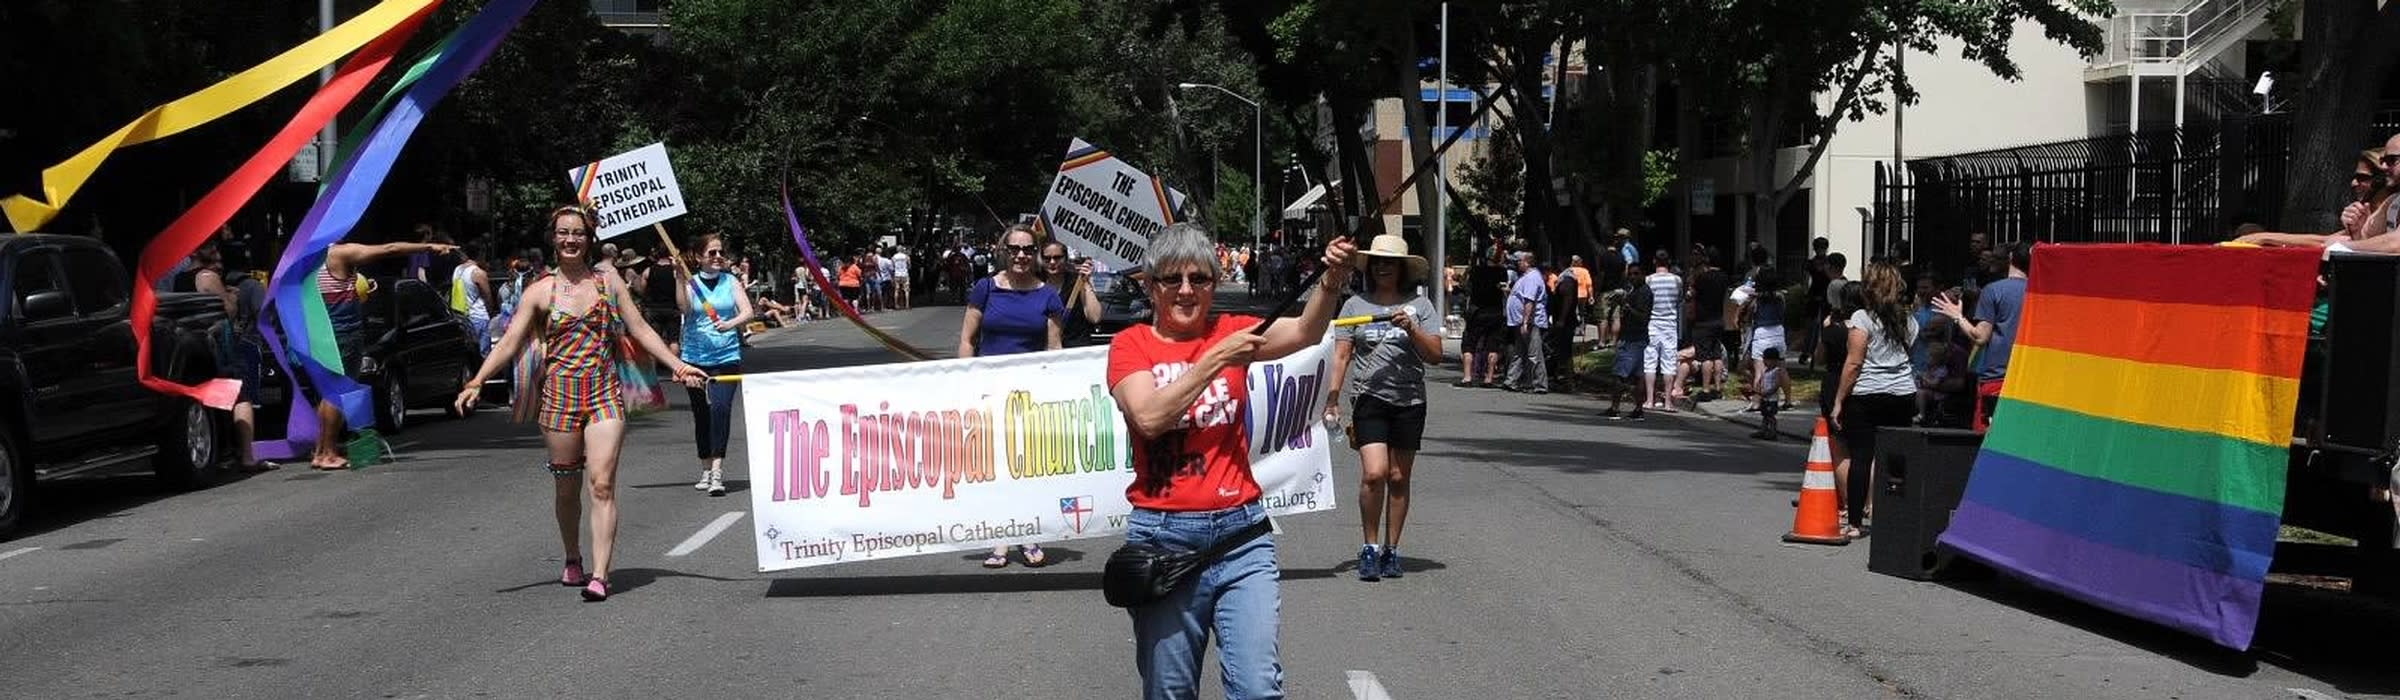 LGBT3: Photo Credit: Charlie Peer and Outword Magazine